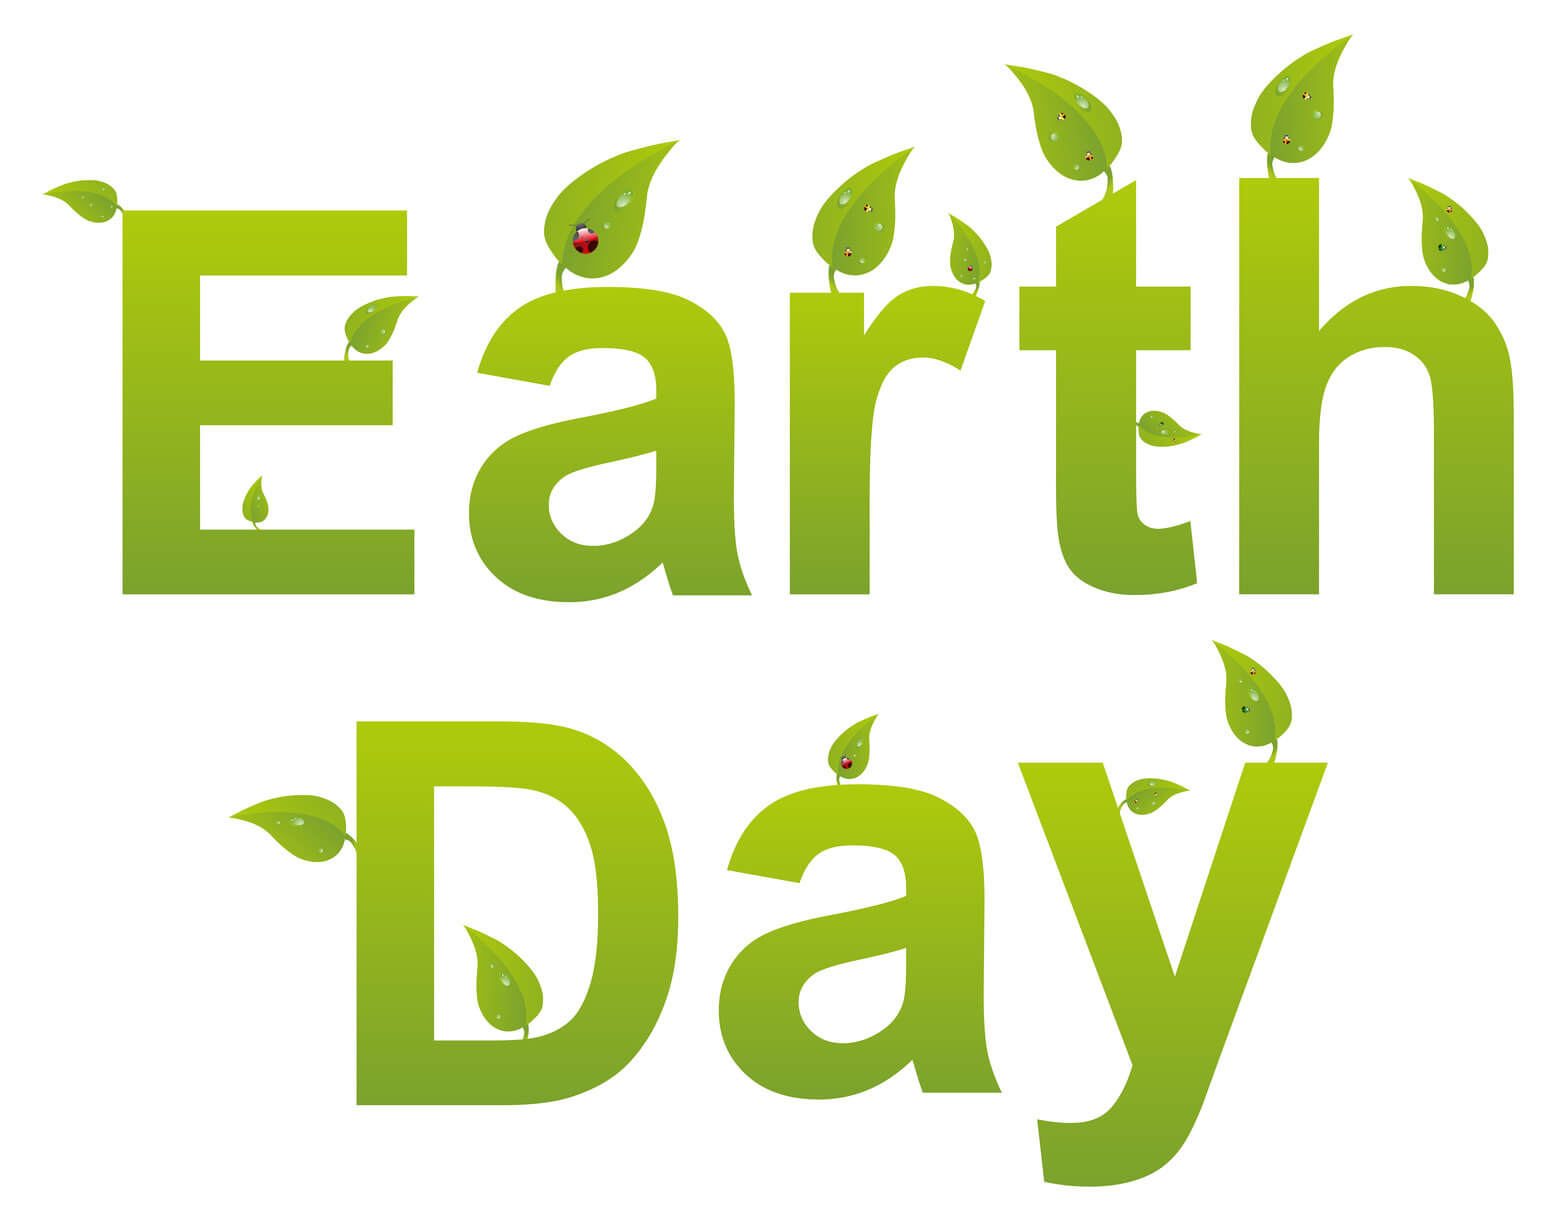 happy earth day text pc wallpaper